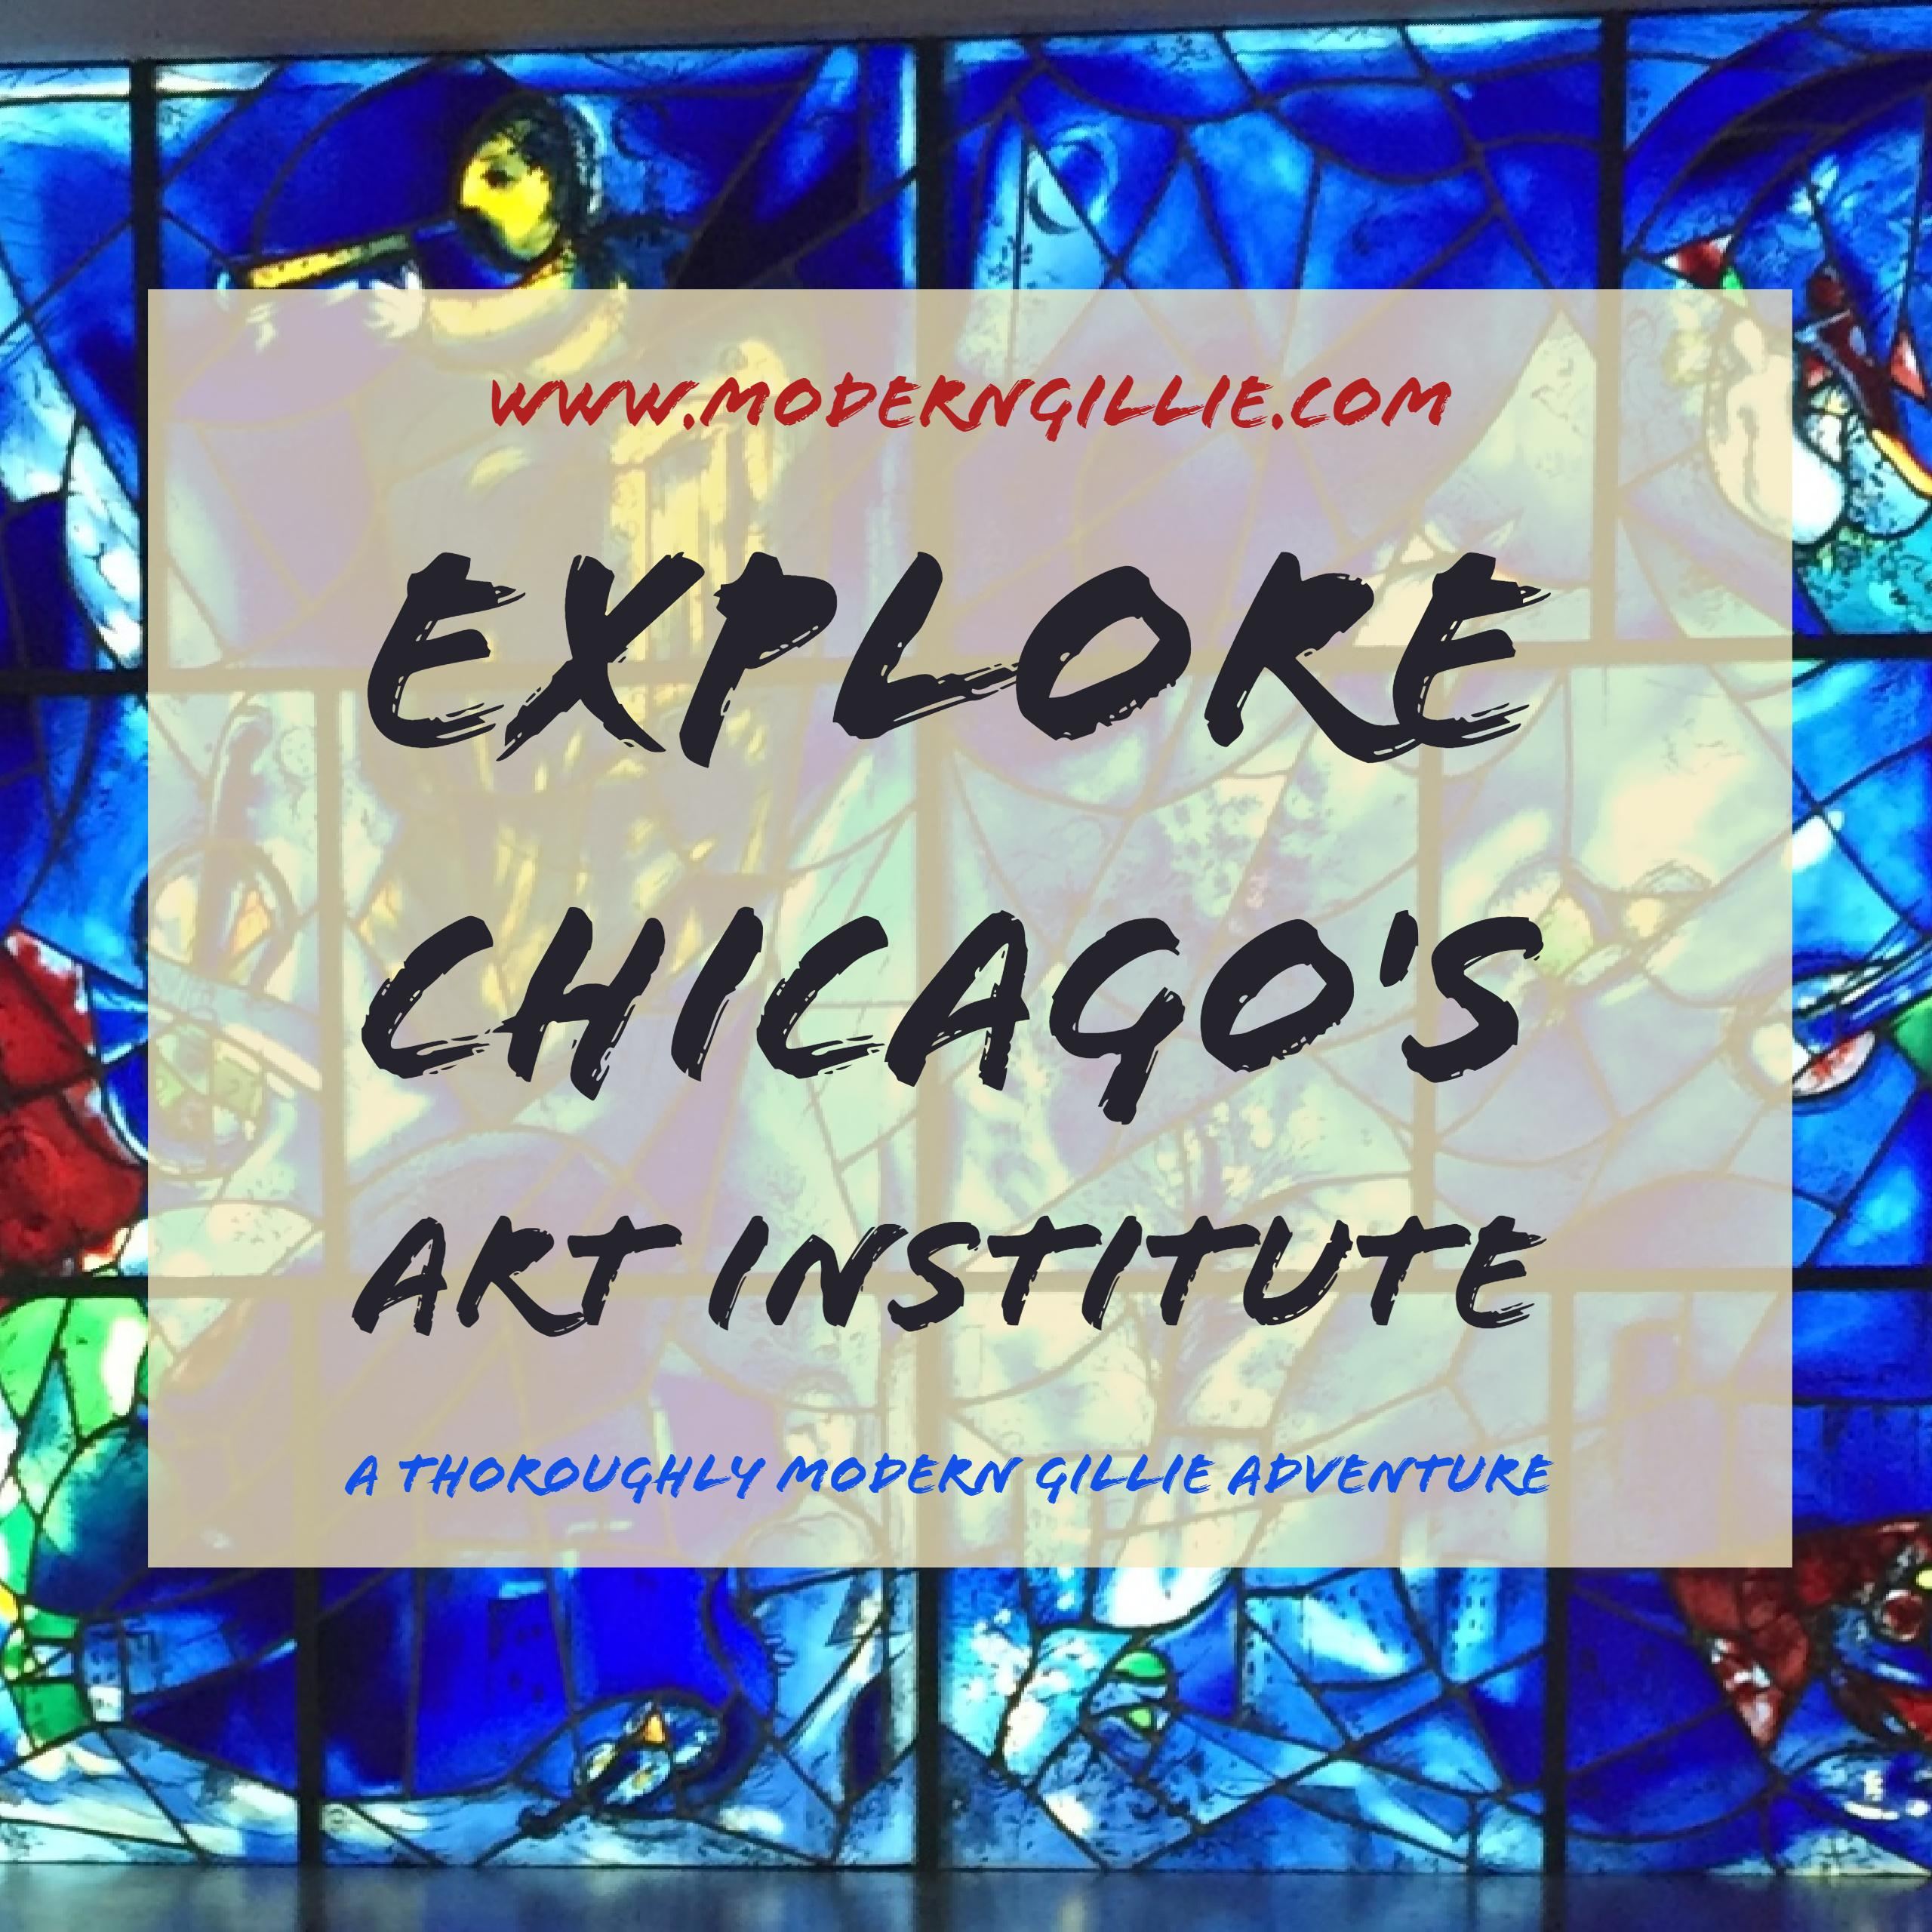 Visit Chicago's Art Institute, www.moderngillie.com